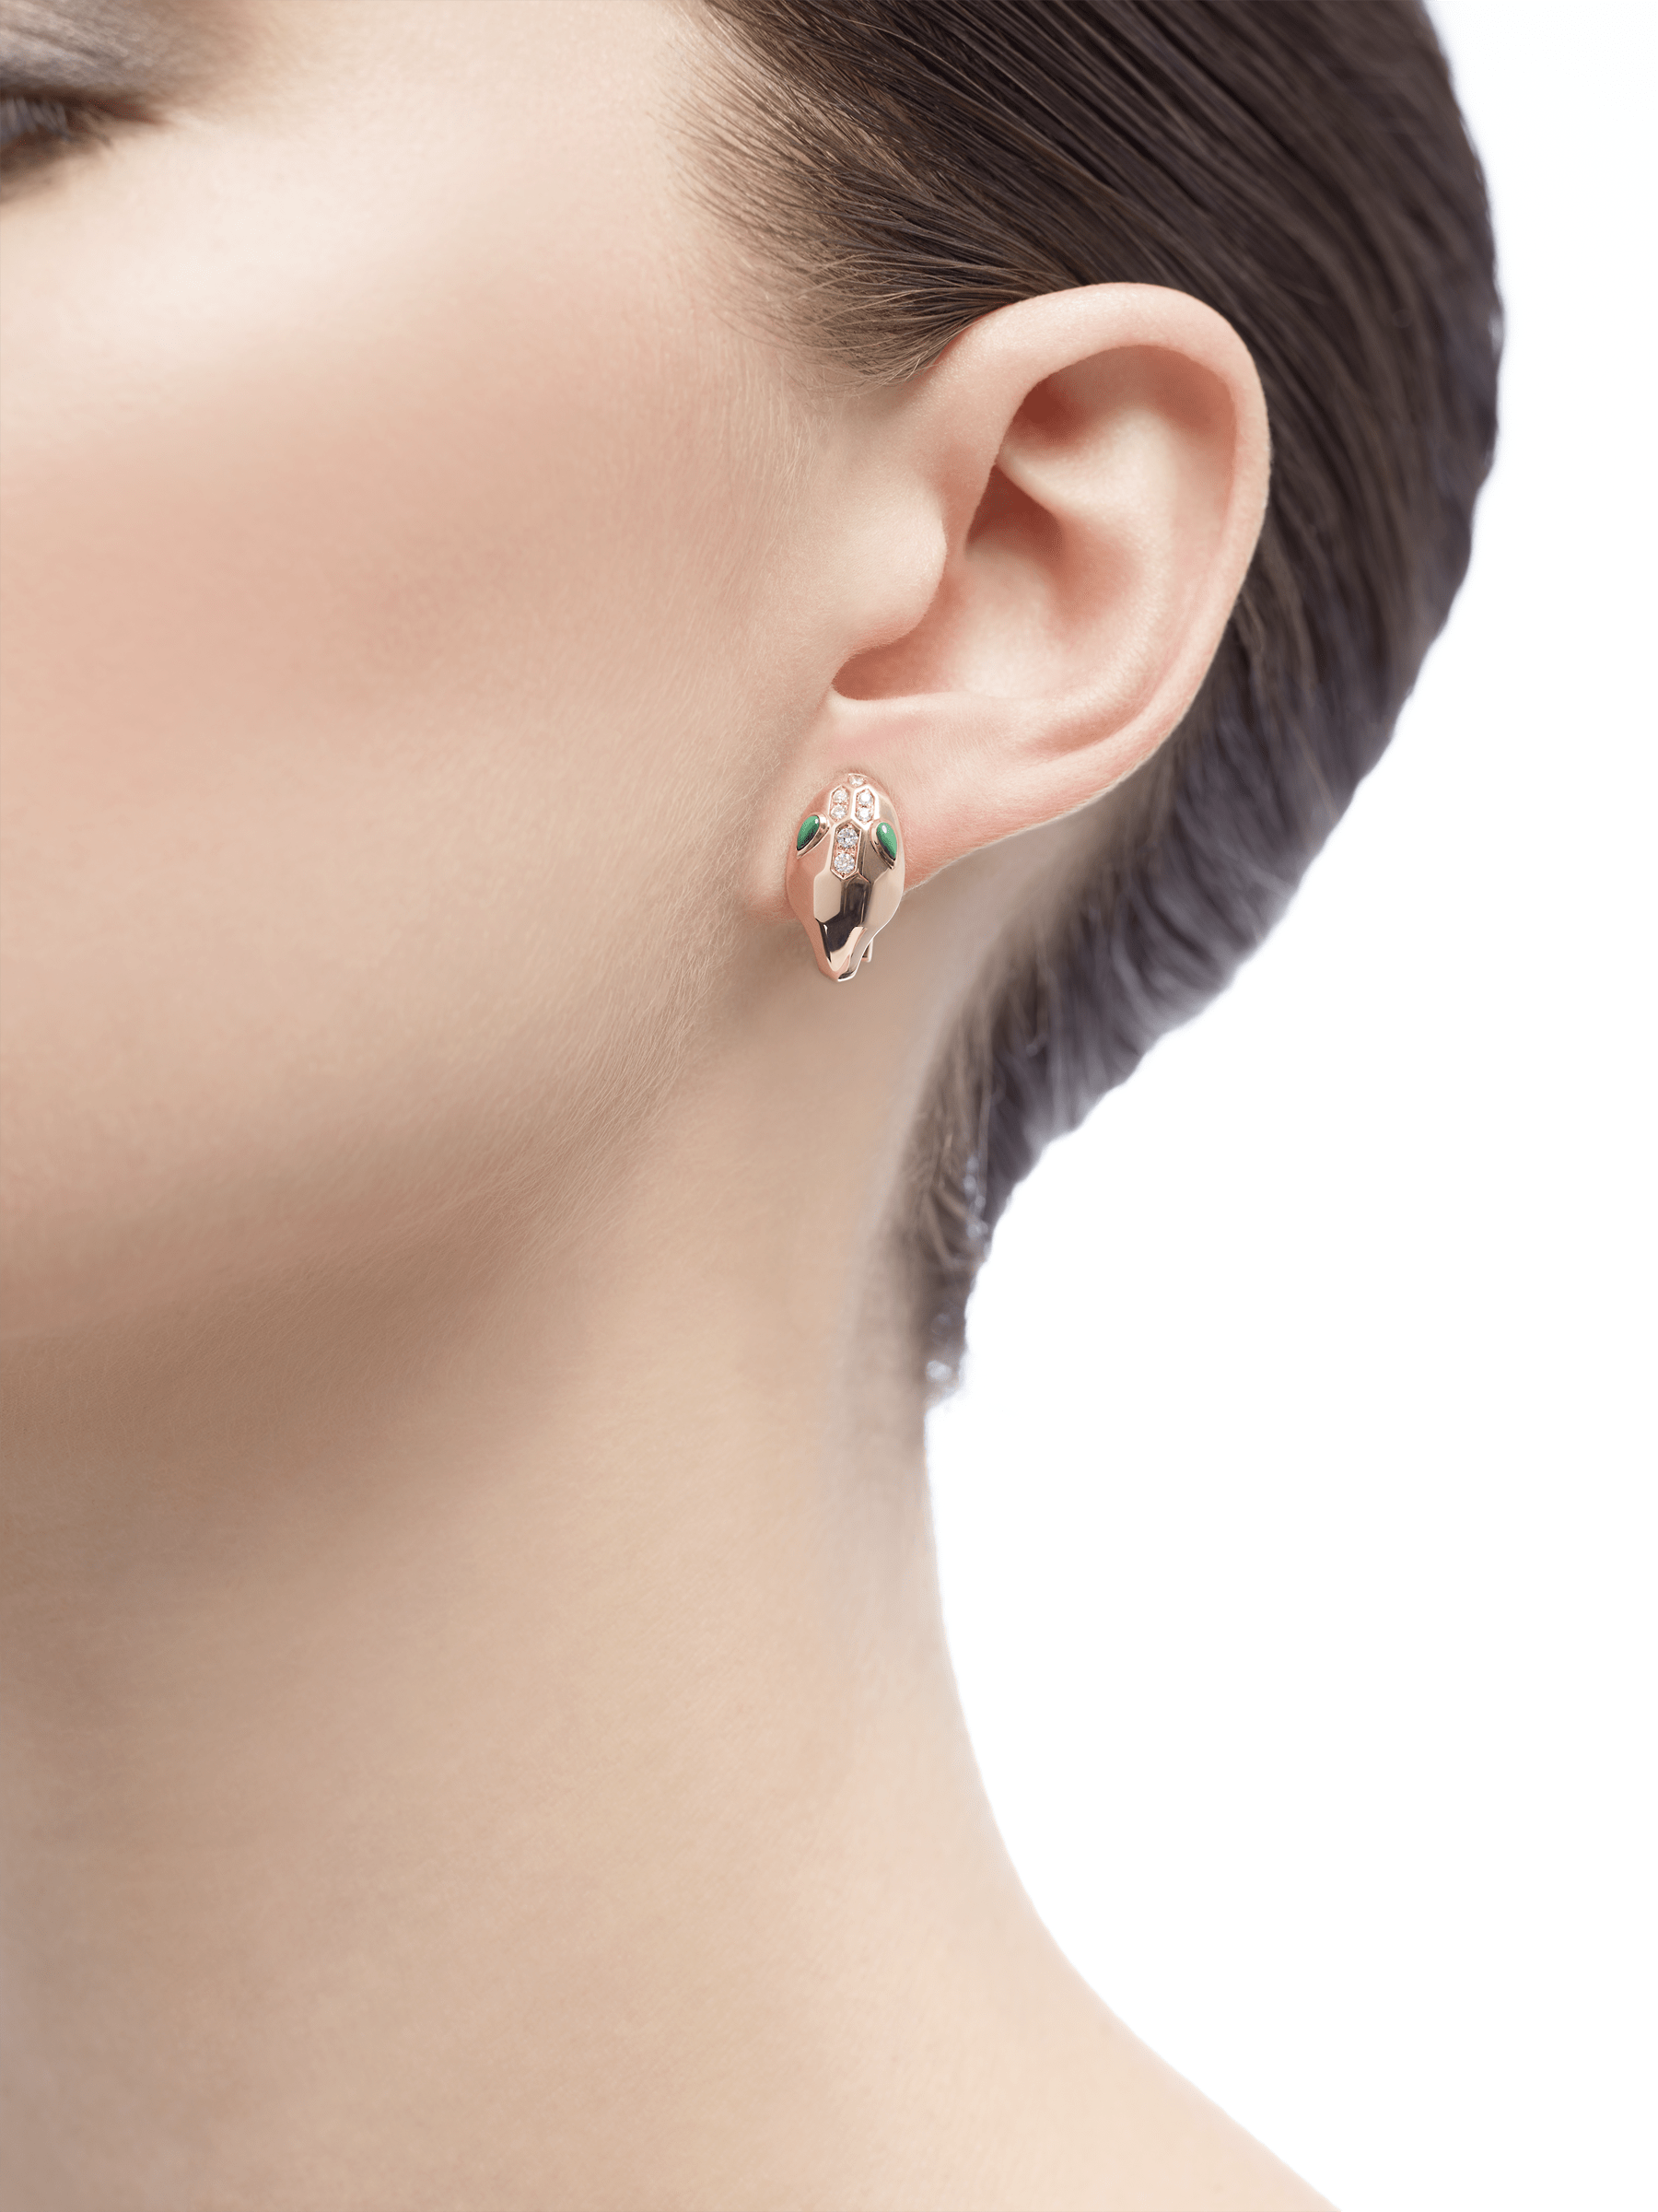 Serpenti earrings in 18 kt rose gold, set with malachite eyes and demi pavé diamonds. 352701 image 4